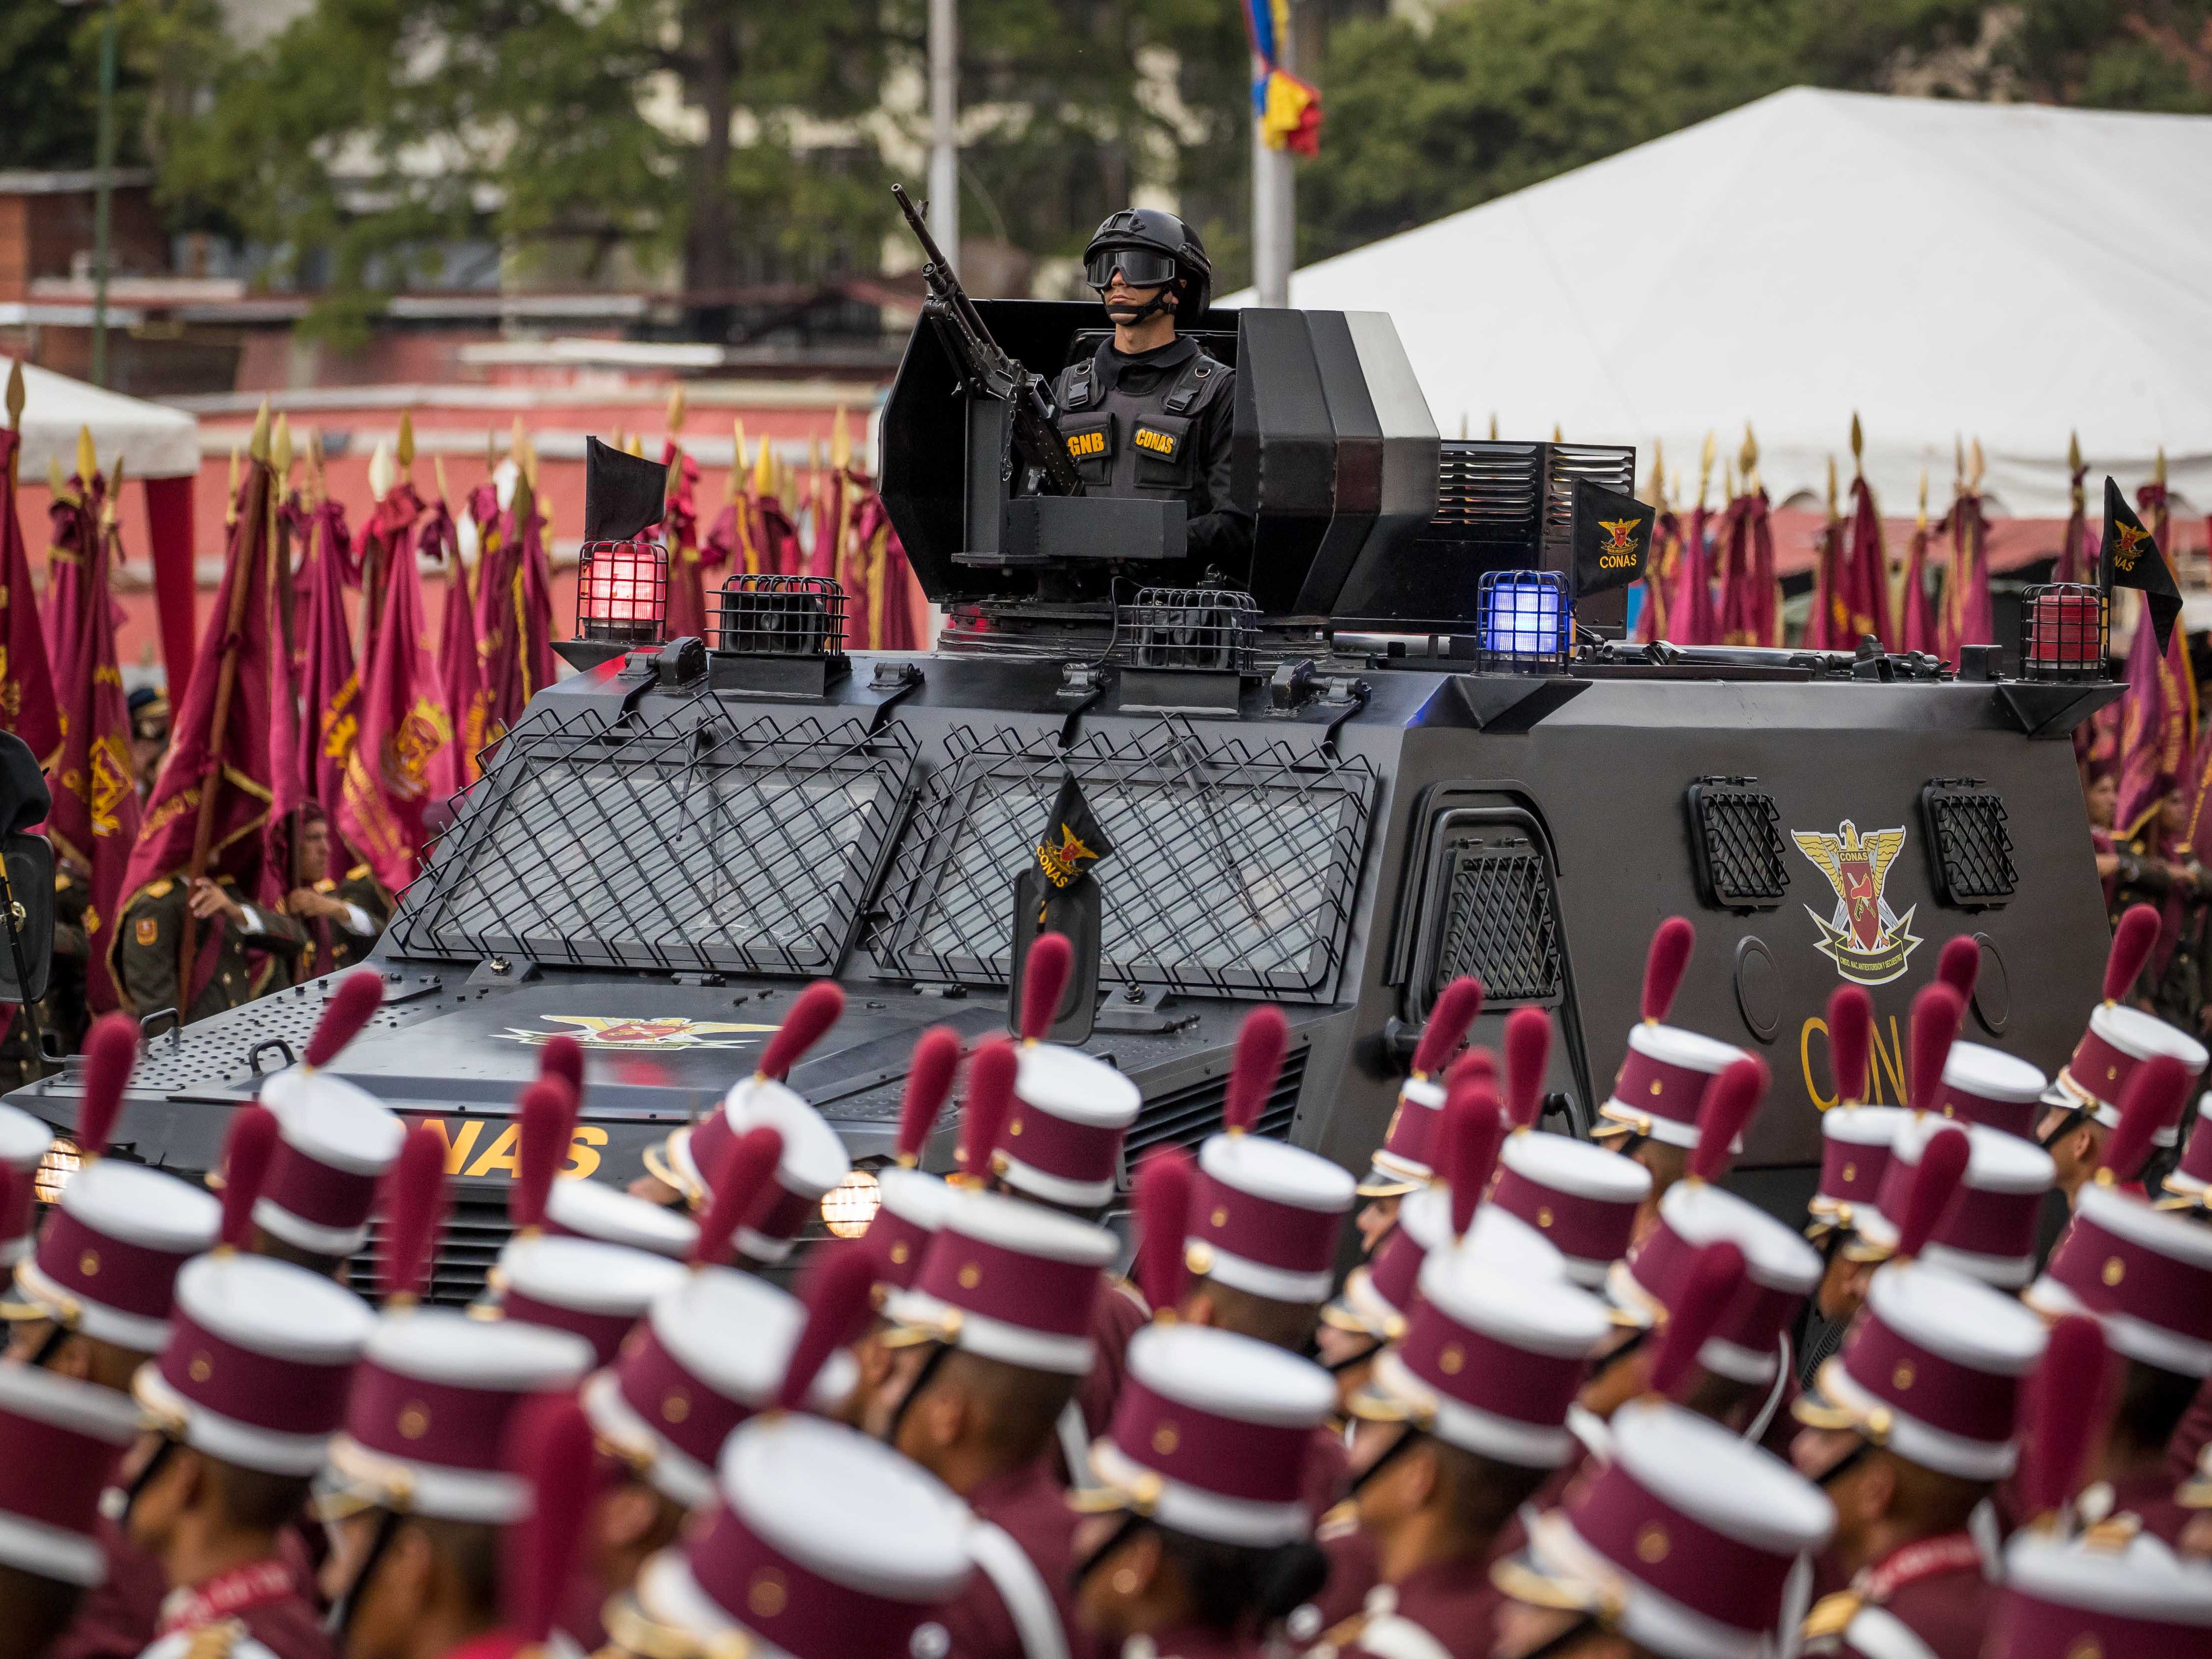 Venezuelan military participates in a televised event with soldiers in Caracas, Venezuela on Aug. 4, 2018. During a commemoration of the 81th anniversary of the creation of the Bolivarian National Guard (GNB) Venezuelan President Nicolas Maduro cut short a speech and was reportedly evacuated. Some witnesses reported explosions as soldiers at the presentation scattered. In a statement to the media after the incident Maduro claimed that Colombian President Juan Manuel Santos and far-right elements in Venezuela had attempted to assassinate him using a pair of drones flying over a military ceremony. The resulting explosion were reported to have injured seven people.